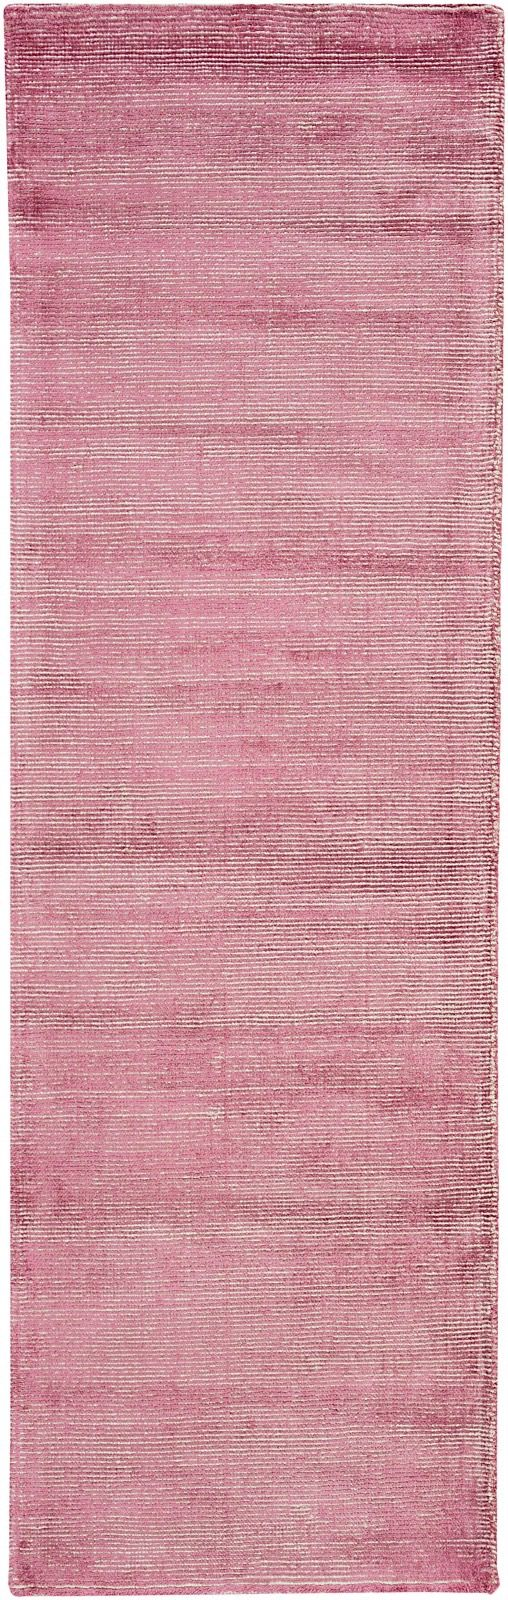 surya prague solid/striped area rug collection